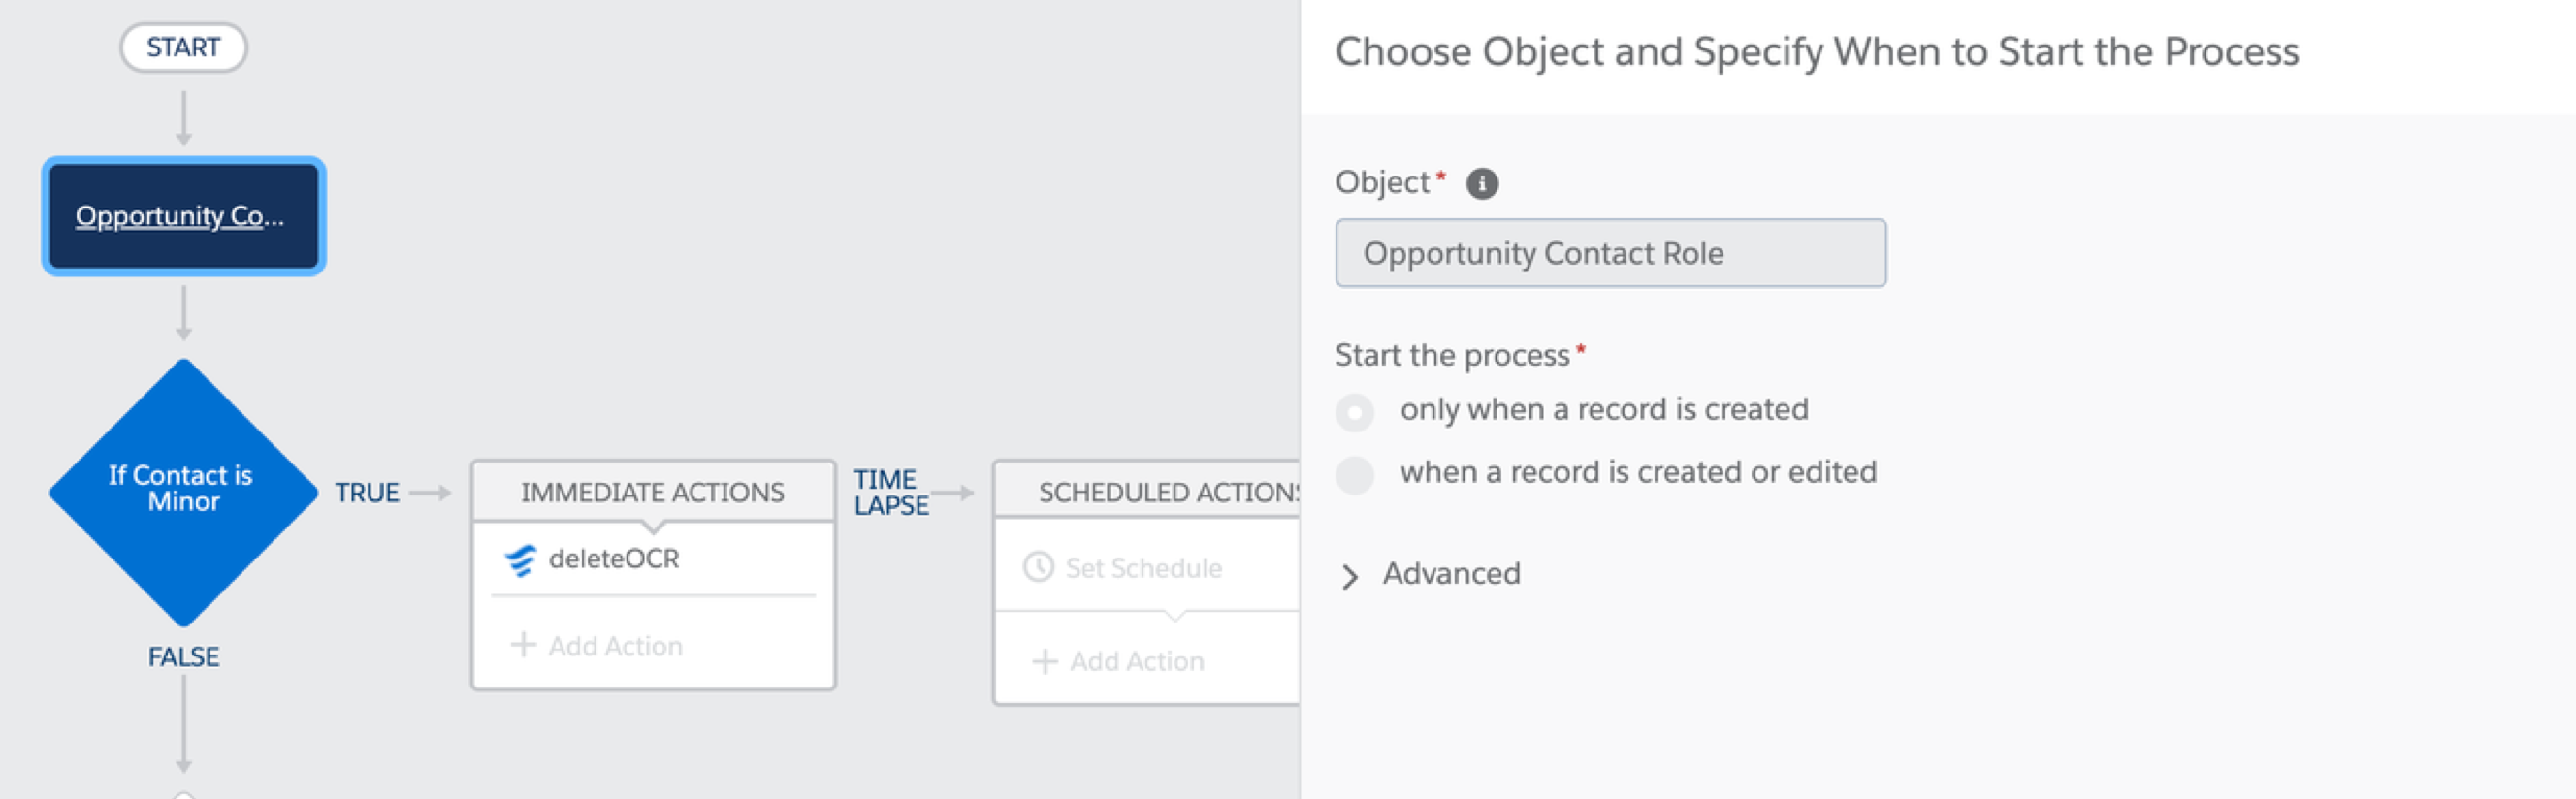 Process Builder specifying when to start the process with the Opportunity Contact Role